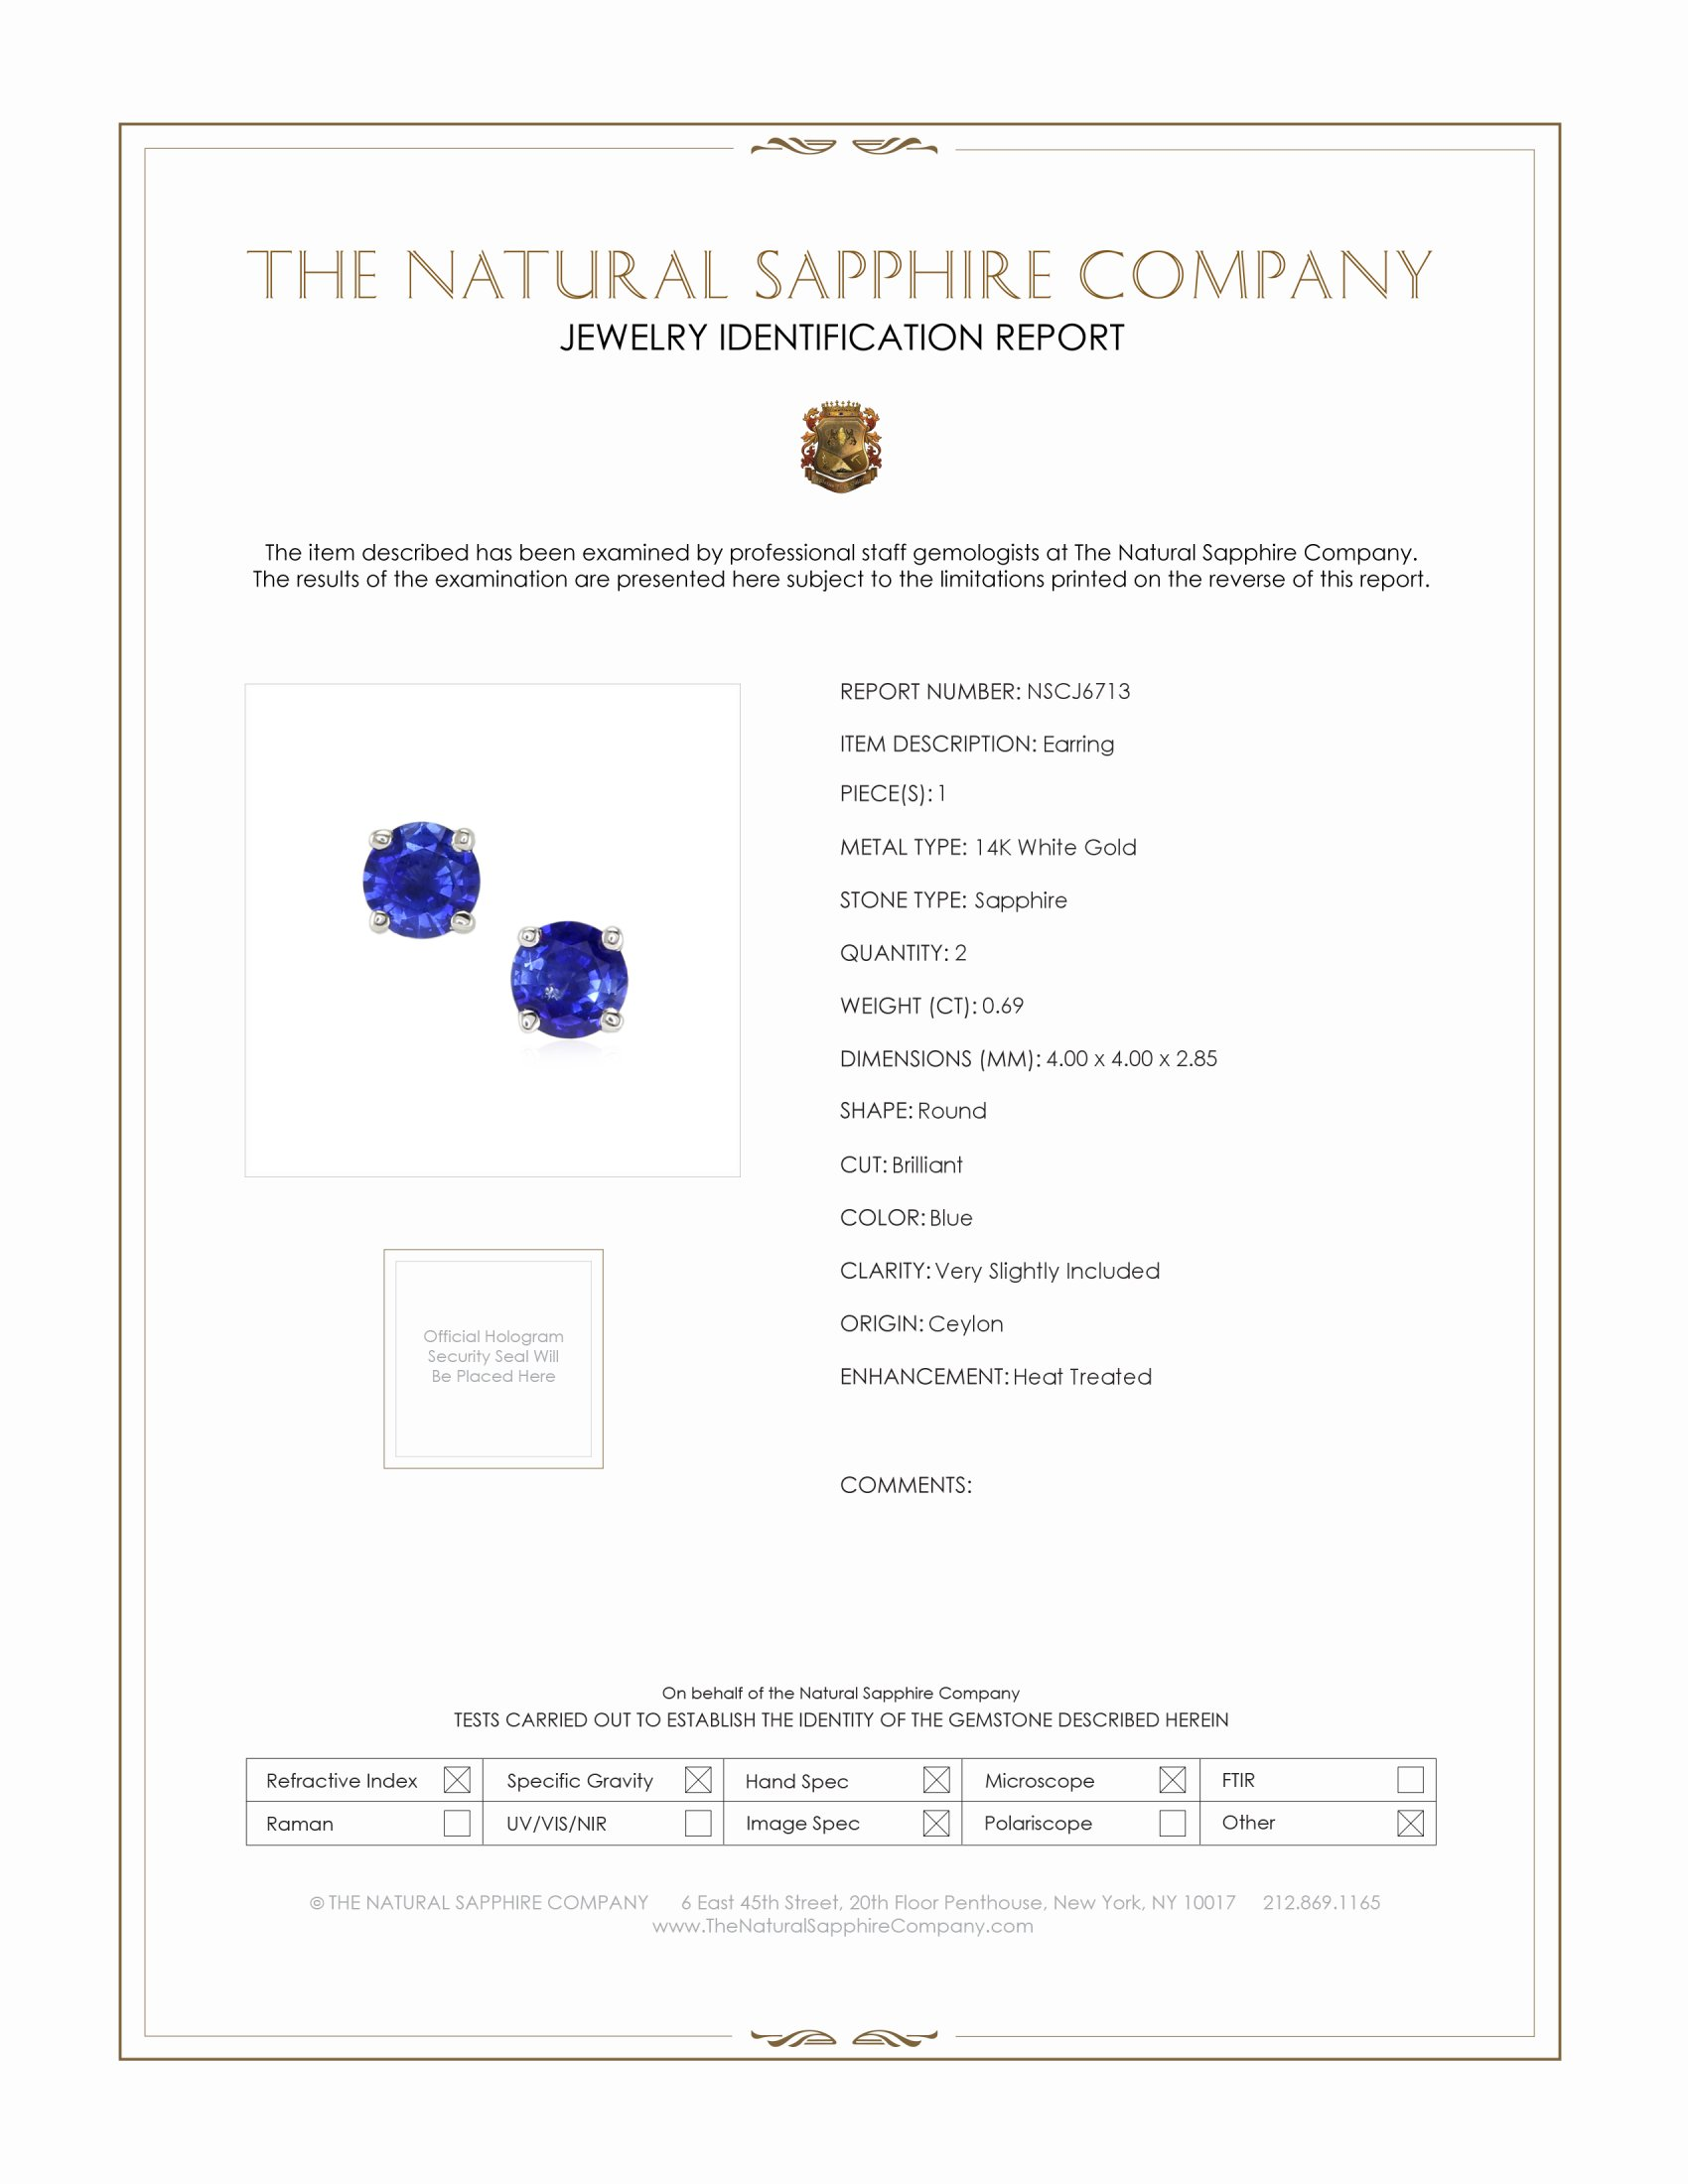 0.69ct Blue Sapphire Earring Certification